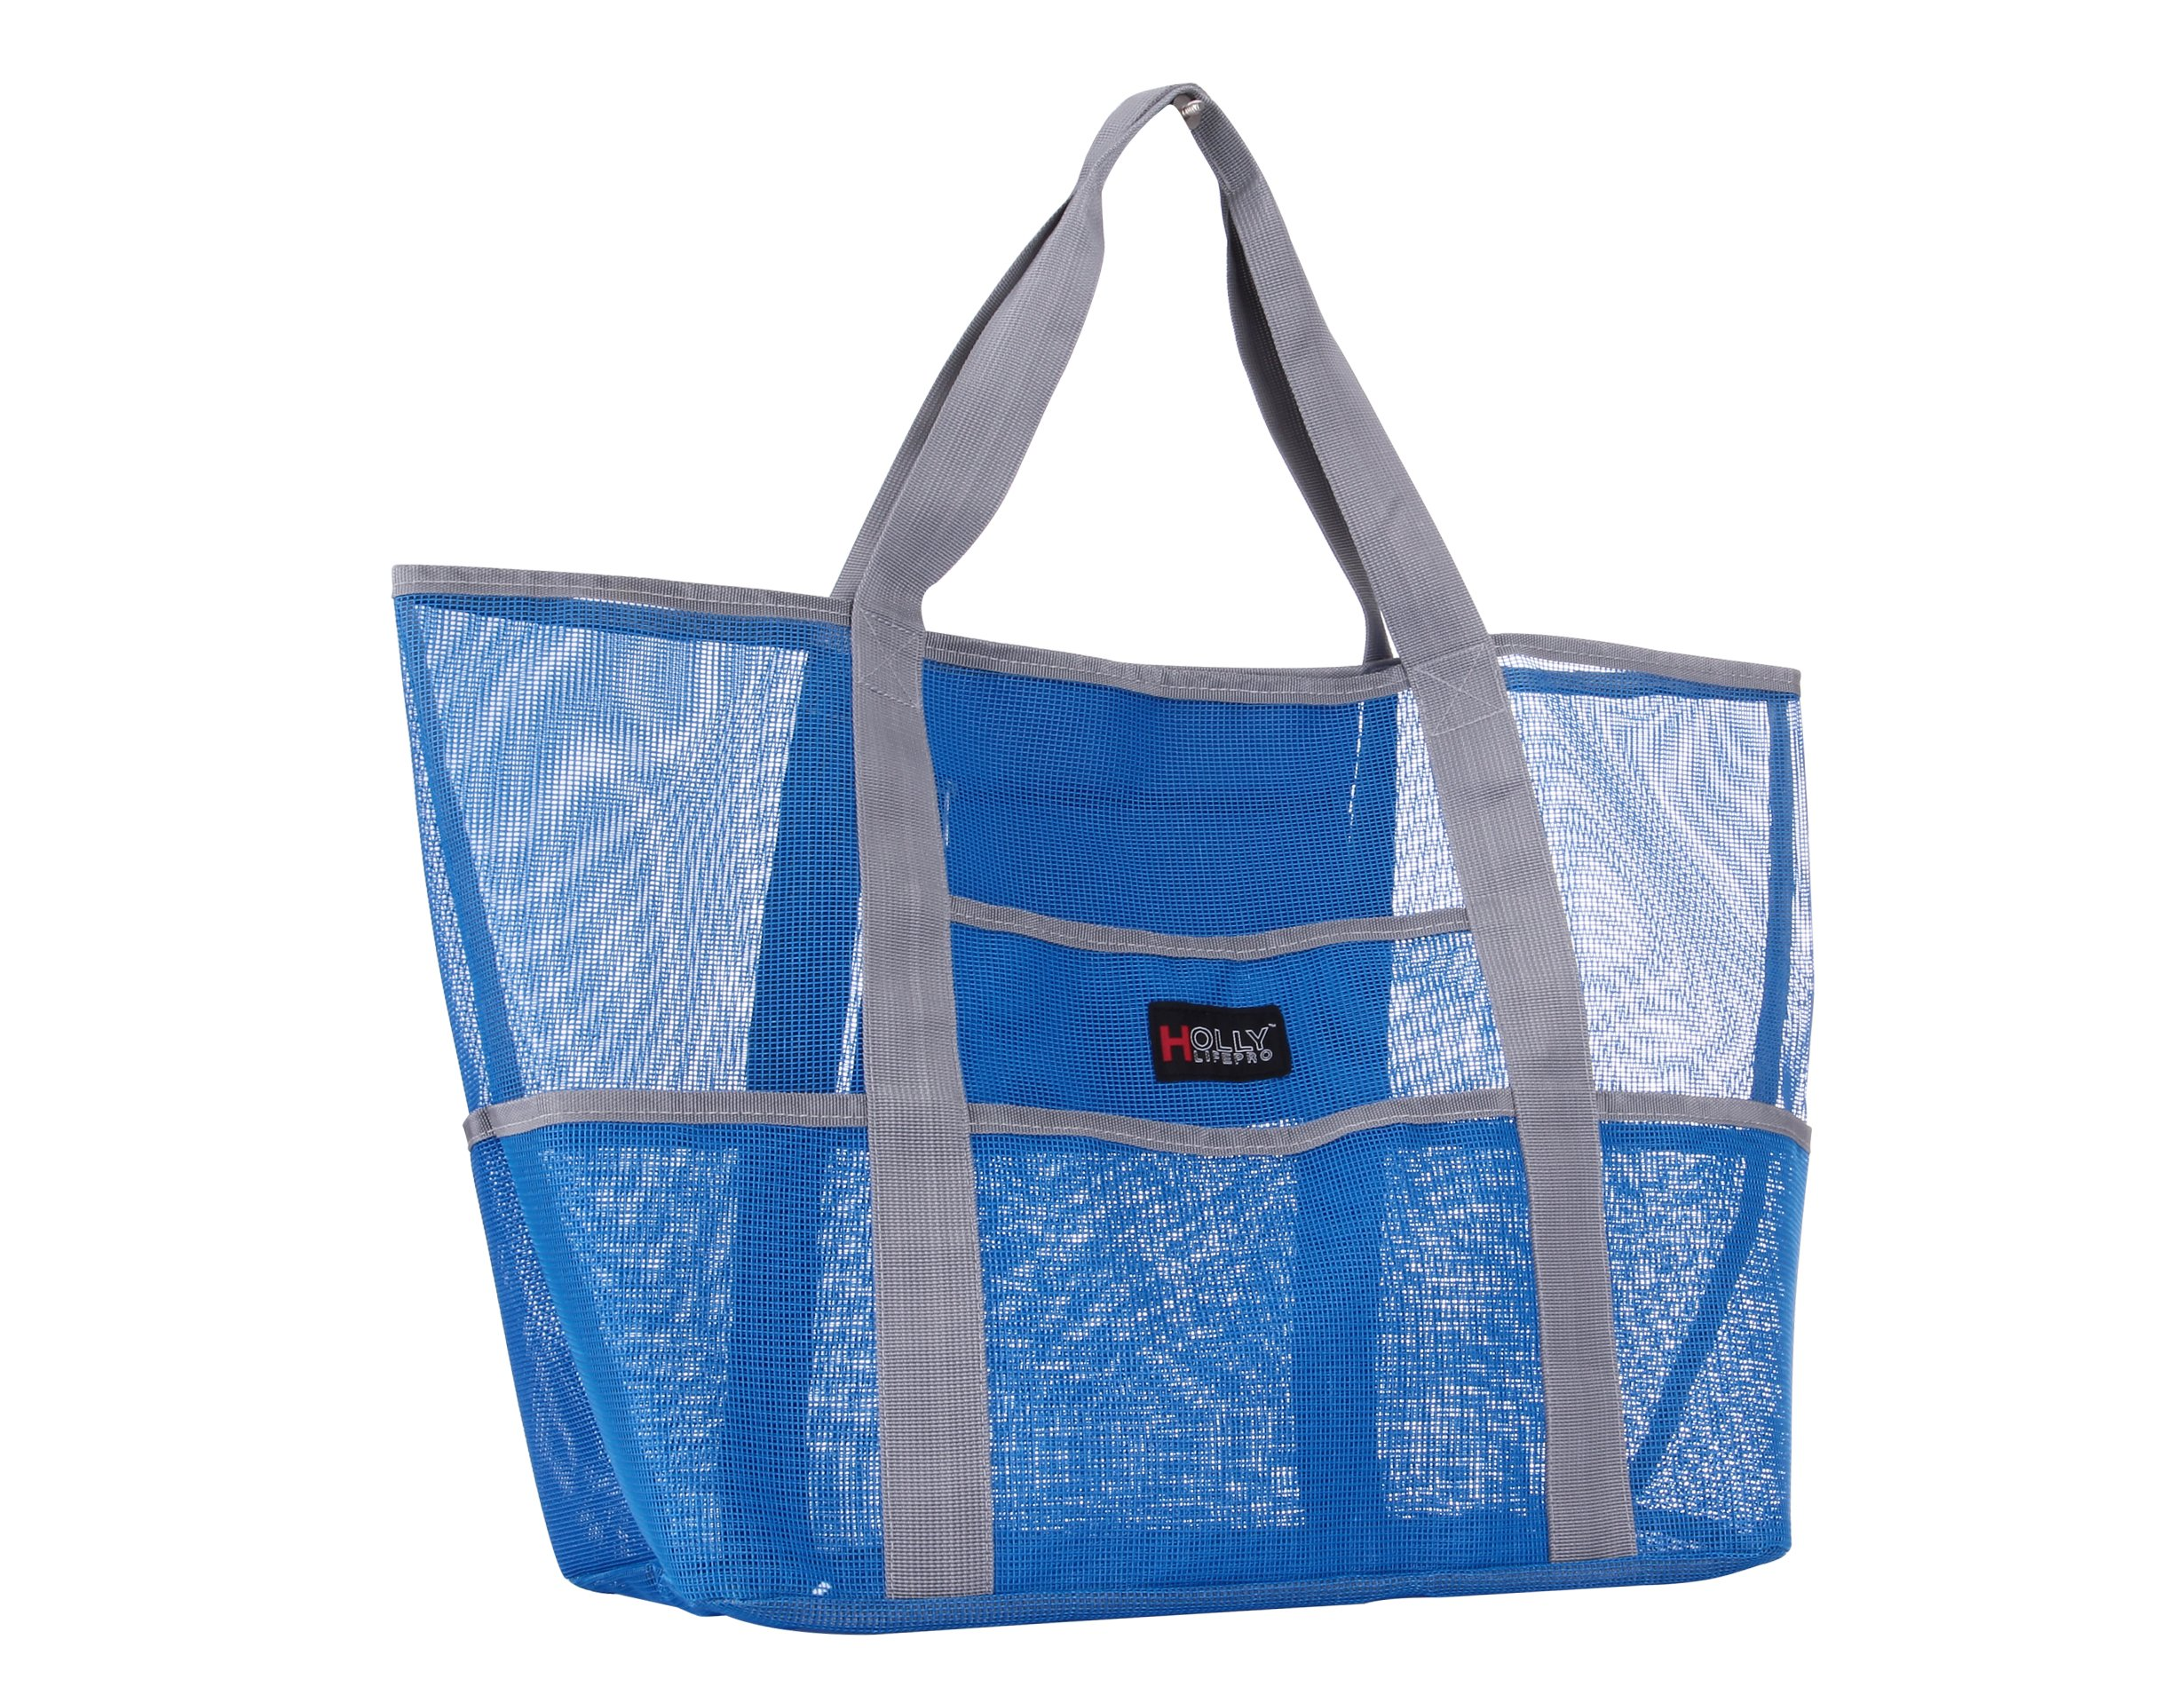 Holly LifePro Mesh Beach Bag Toy Tote Bag Large,Lightweight Market Grocery & Picnic Tote with Oversized Pockets,Inside Zippered Pocket,Carry All Organizer Bag Blue